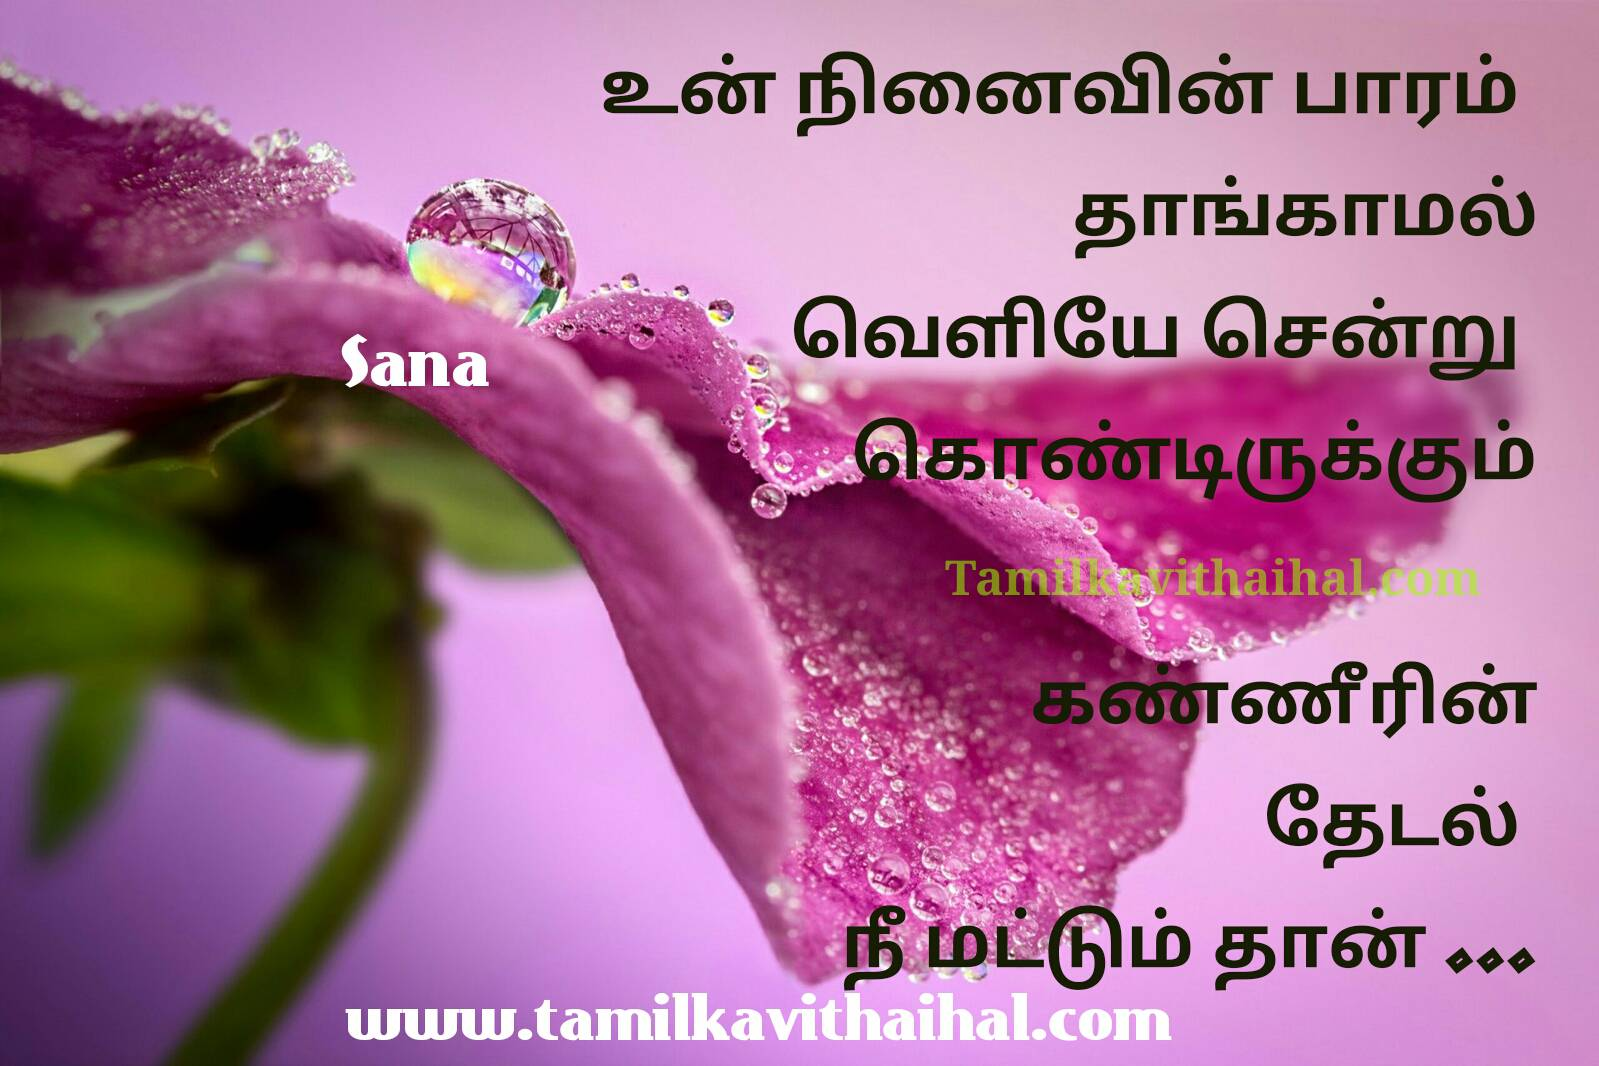 Download Wallpaper Love Failure - one-side-love-failure-quotes-in-tamil-whatsapp-dp-sana-image-hd-wallpaper  Collection_163659.jpg